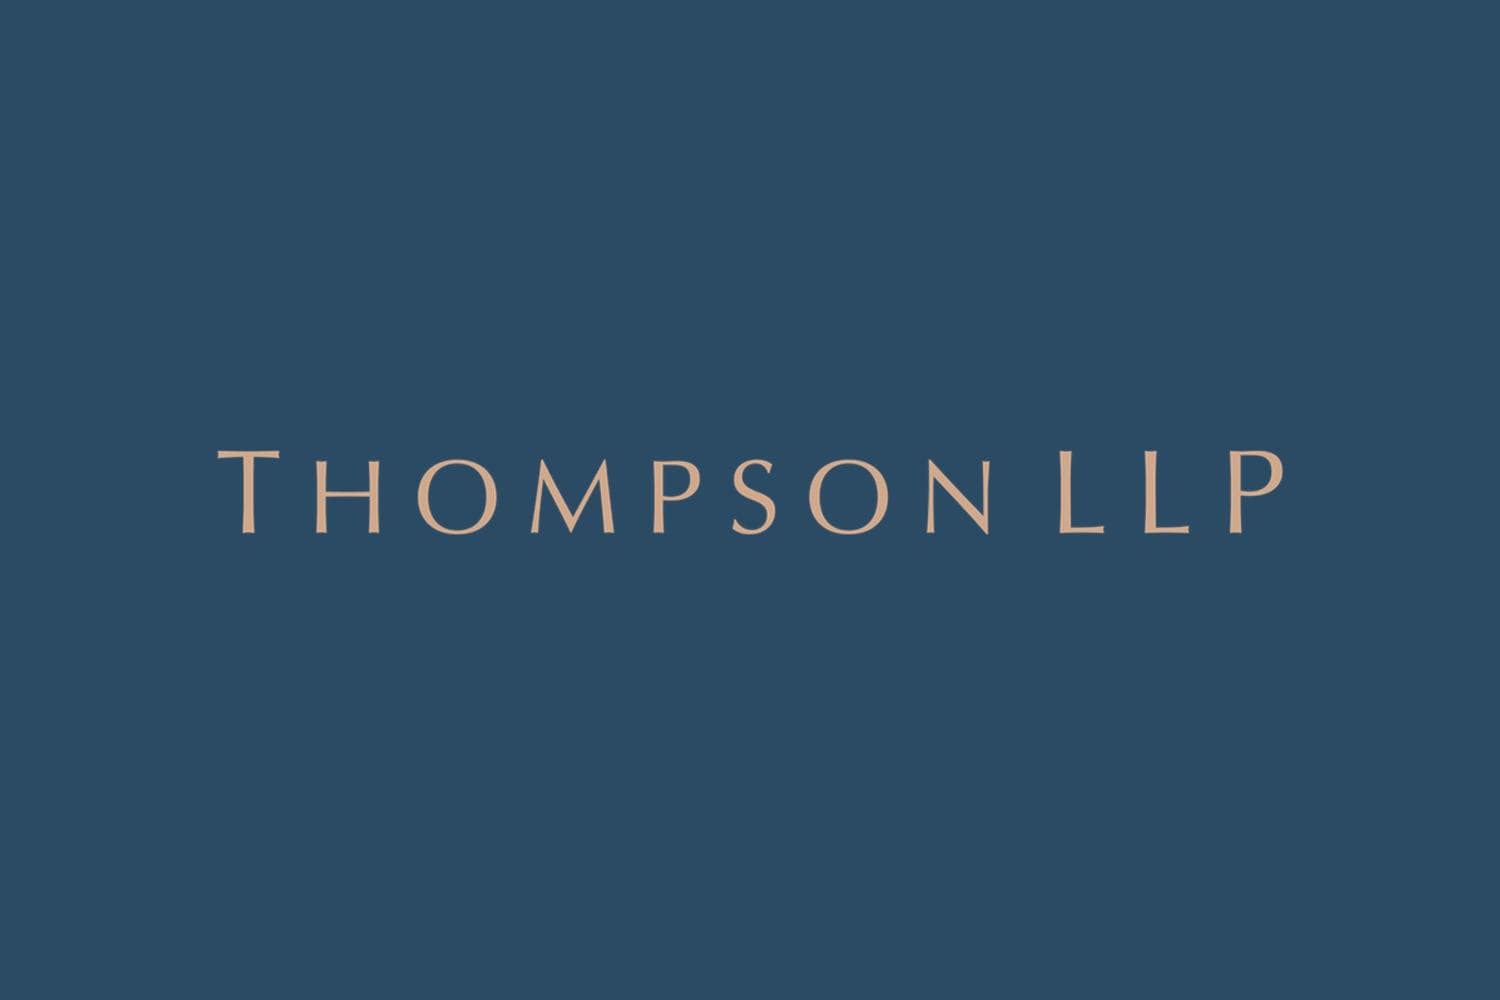 Thompson LLP logo over a navy background.